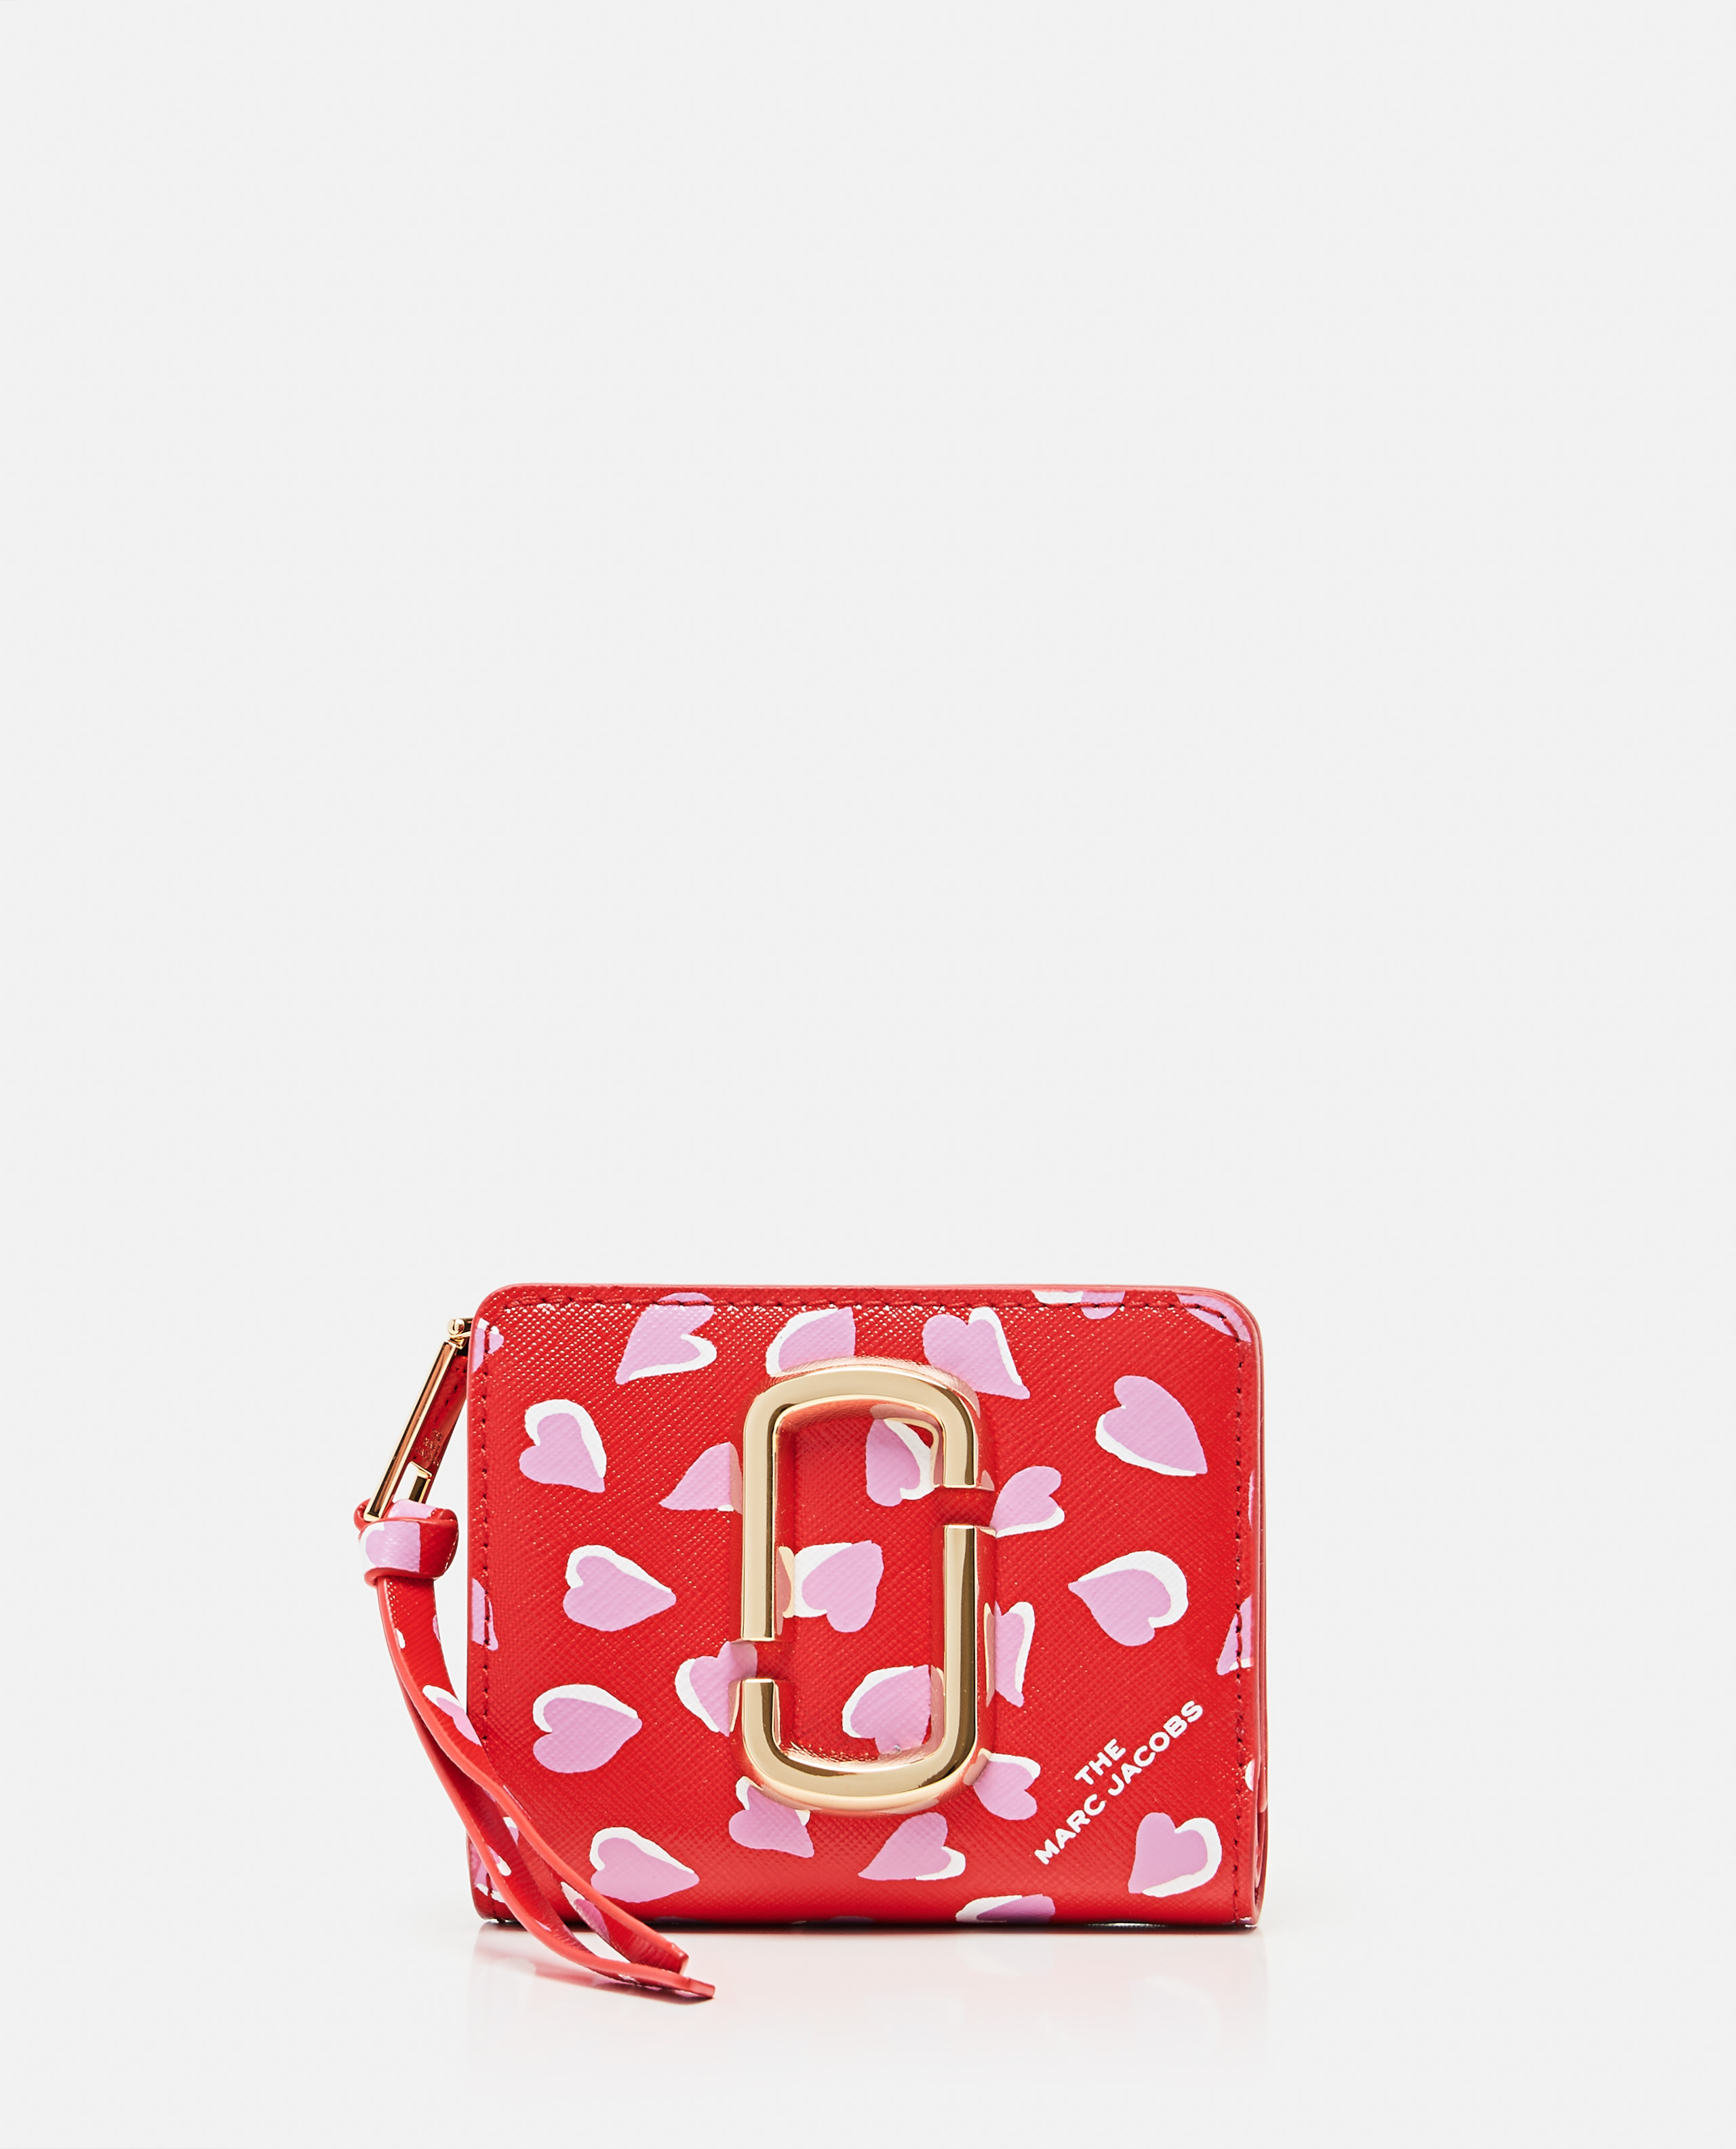 Marc Jacobs MARC JACOBS THE SNAPSHOT PRINTED HEARTS MINI COMPACT WALLET